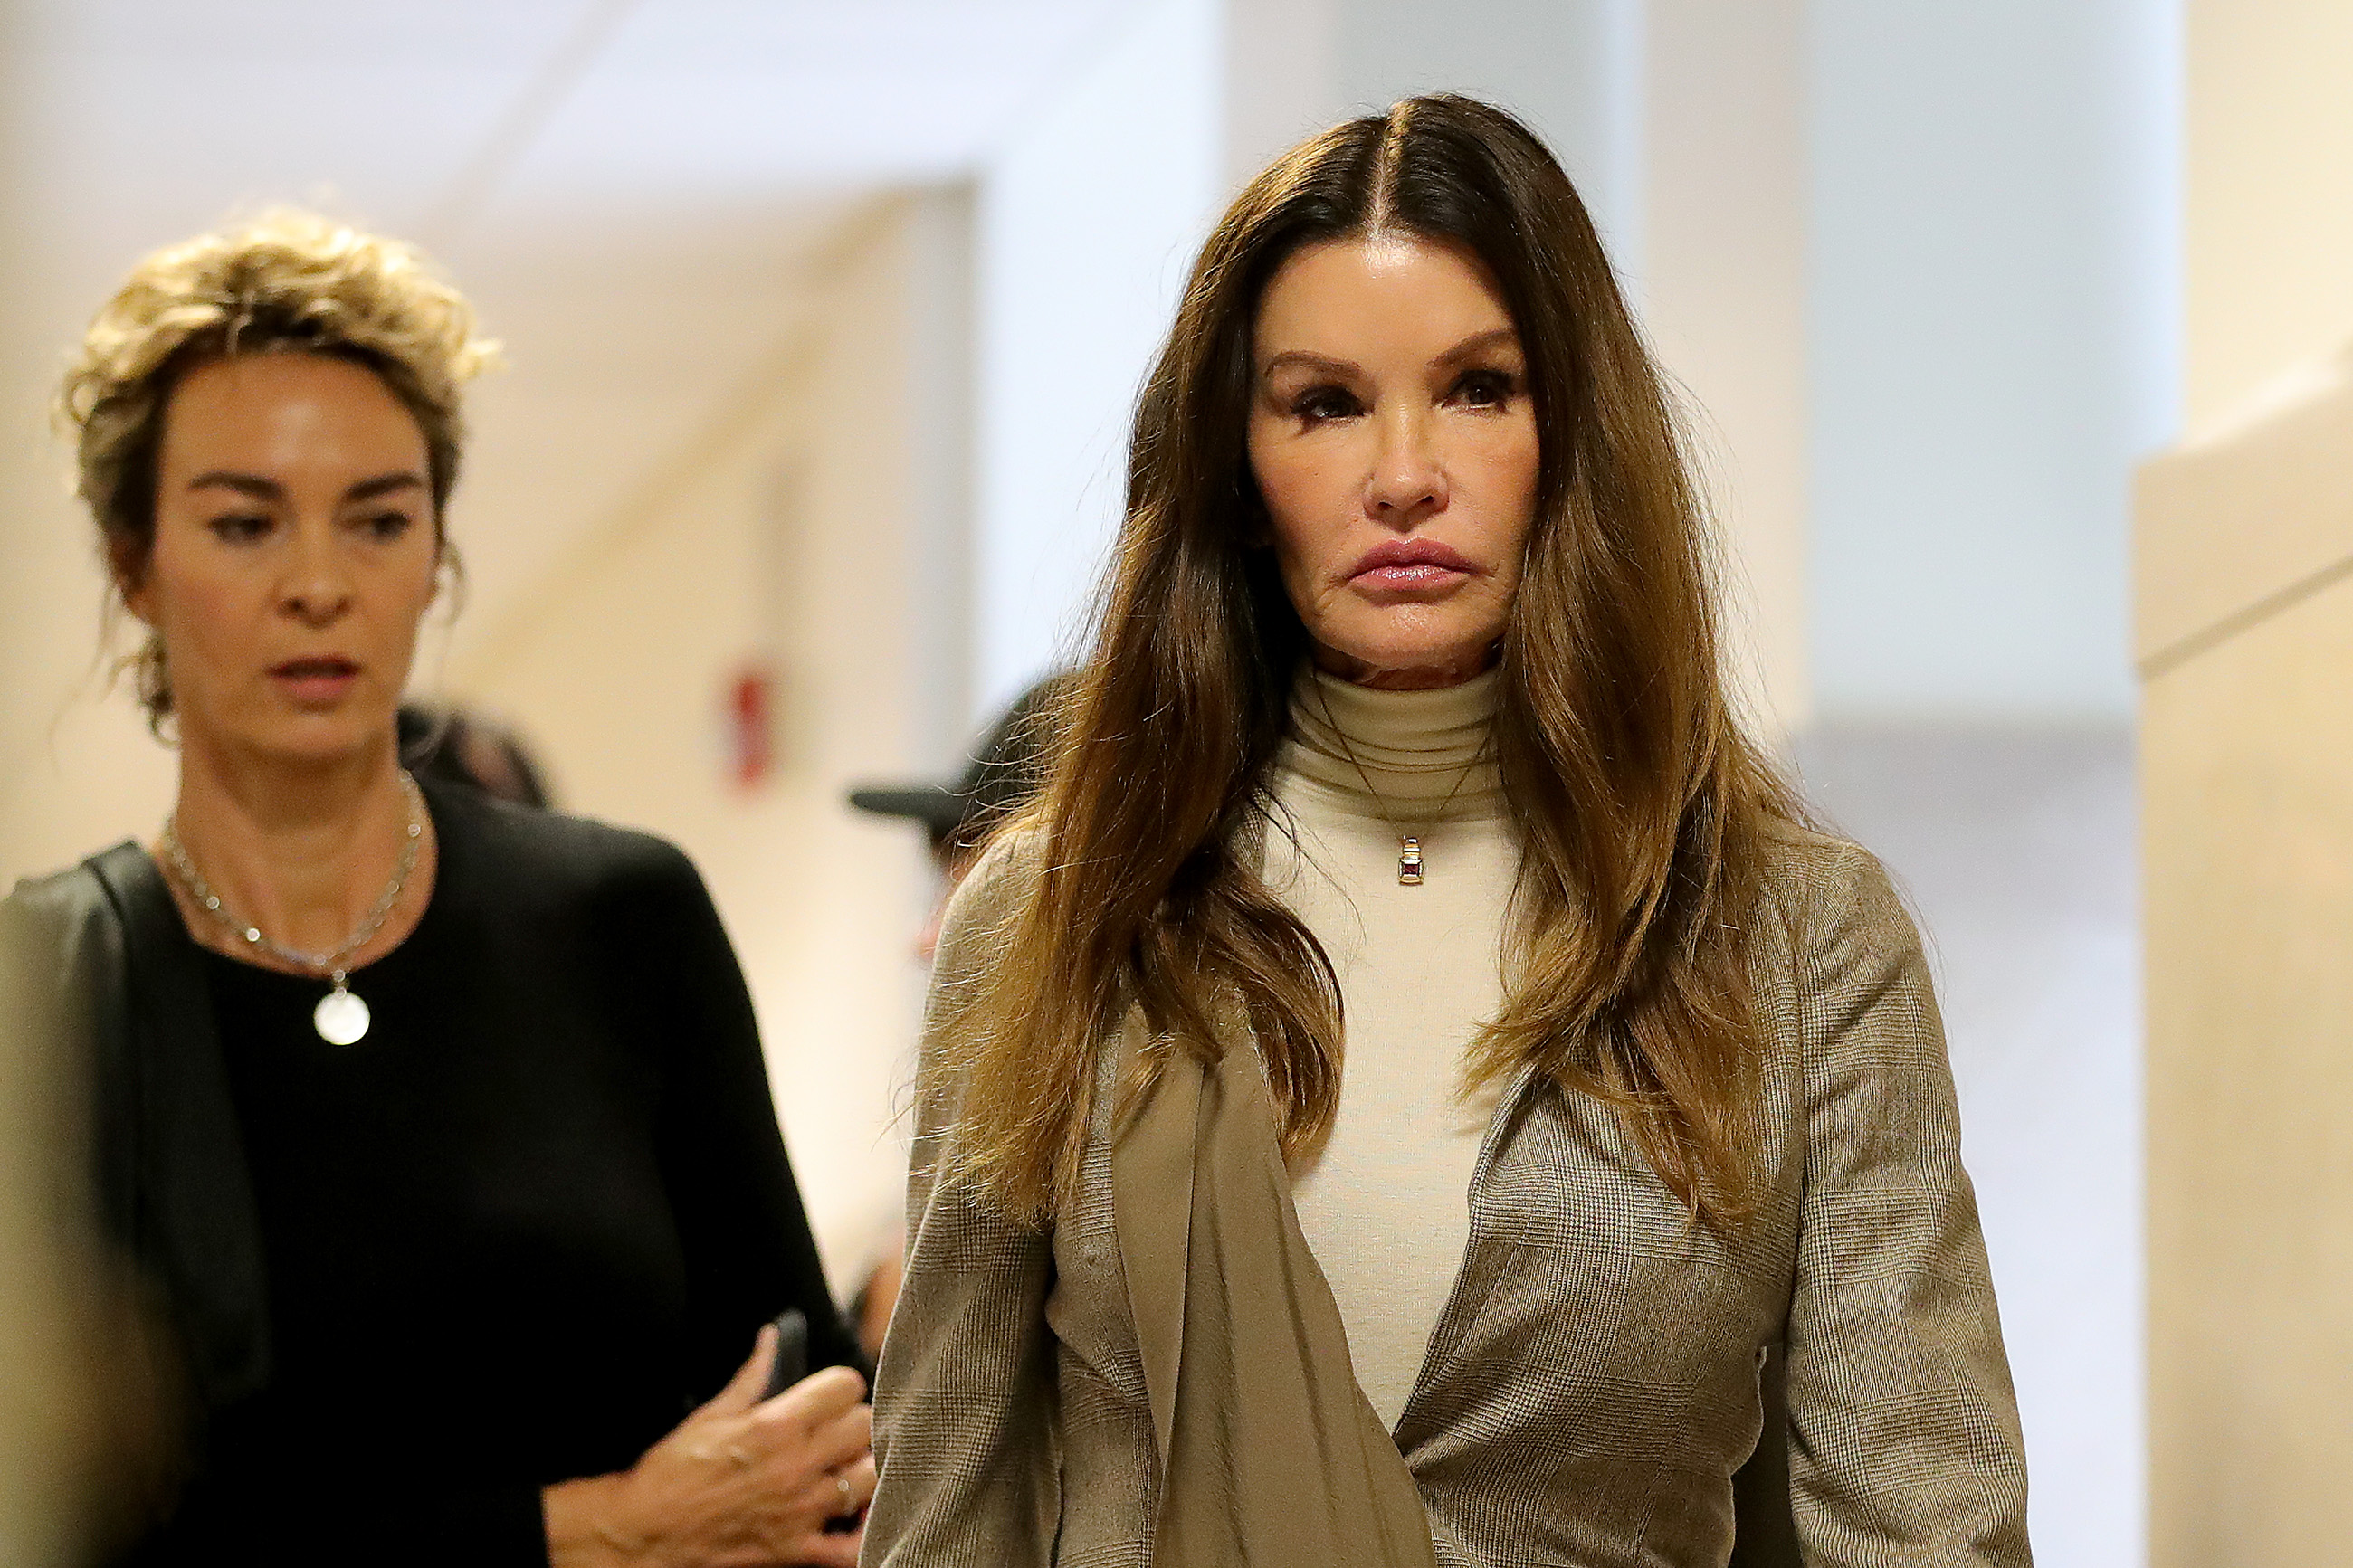 Former model Janice Dickinson arrives at the sentencing hearing for the sexual assault trial of entertainer Bill Cosby at the Montgomery County Courthouse in Norristown, Pennsylvania on September 24, 2018. (Photo by David MAIALETTI / POOL / AFP)